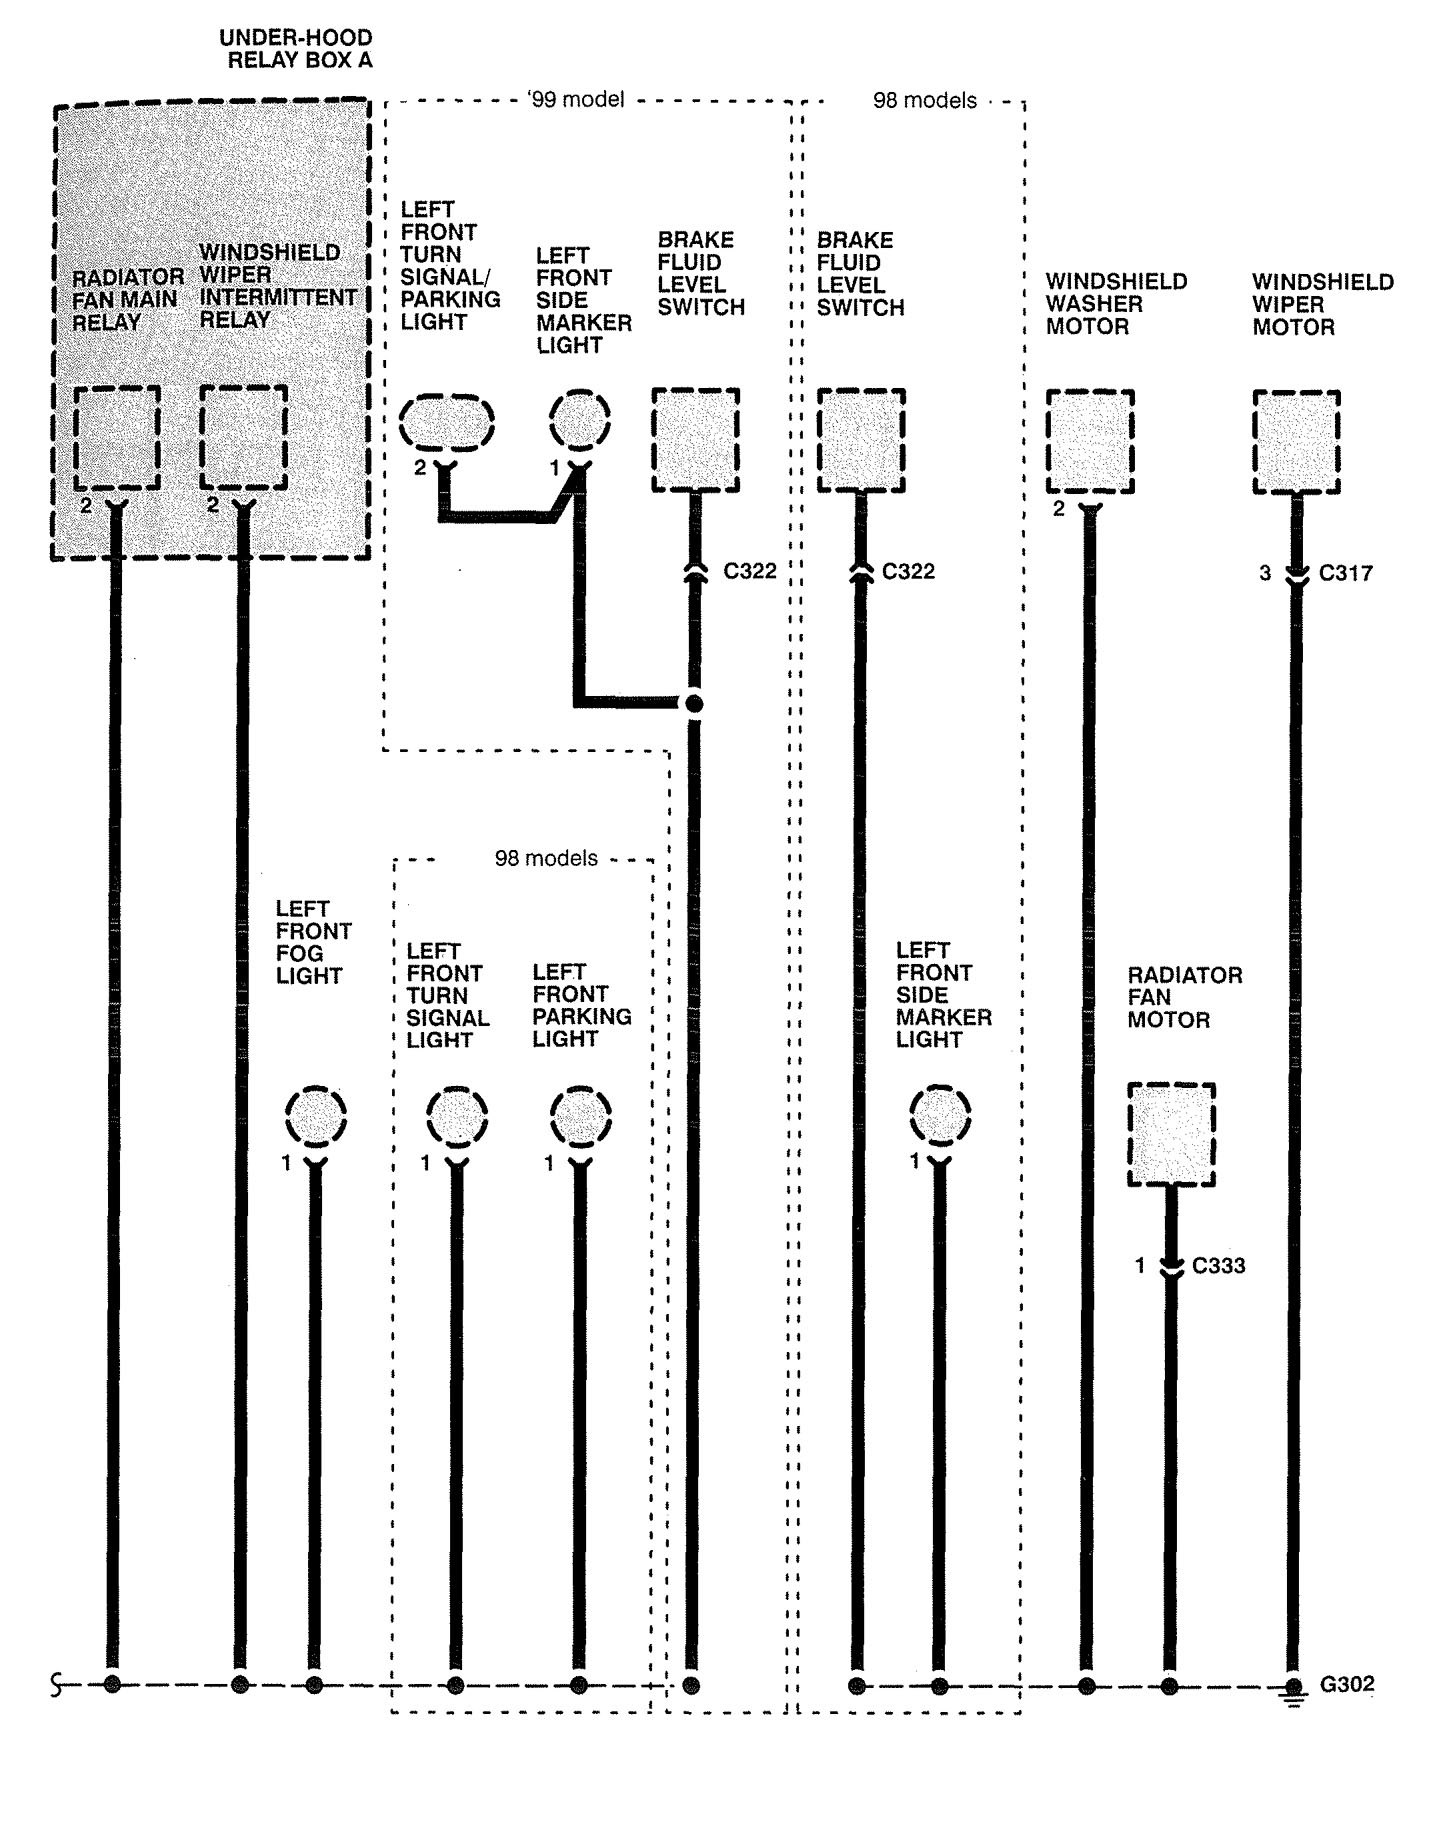 2003 Dodge Caravan Wiring Harness Another Blog About Diagram Trailer Fuel Injector Nissan Engine Grand Problems